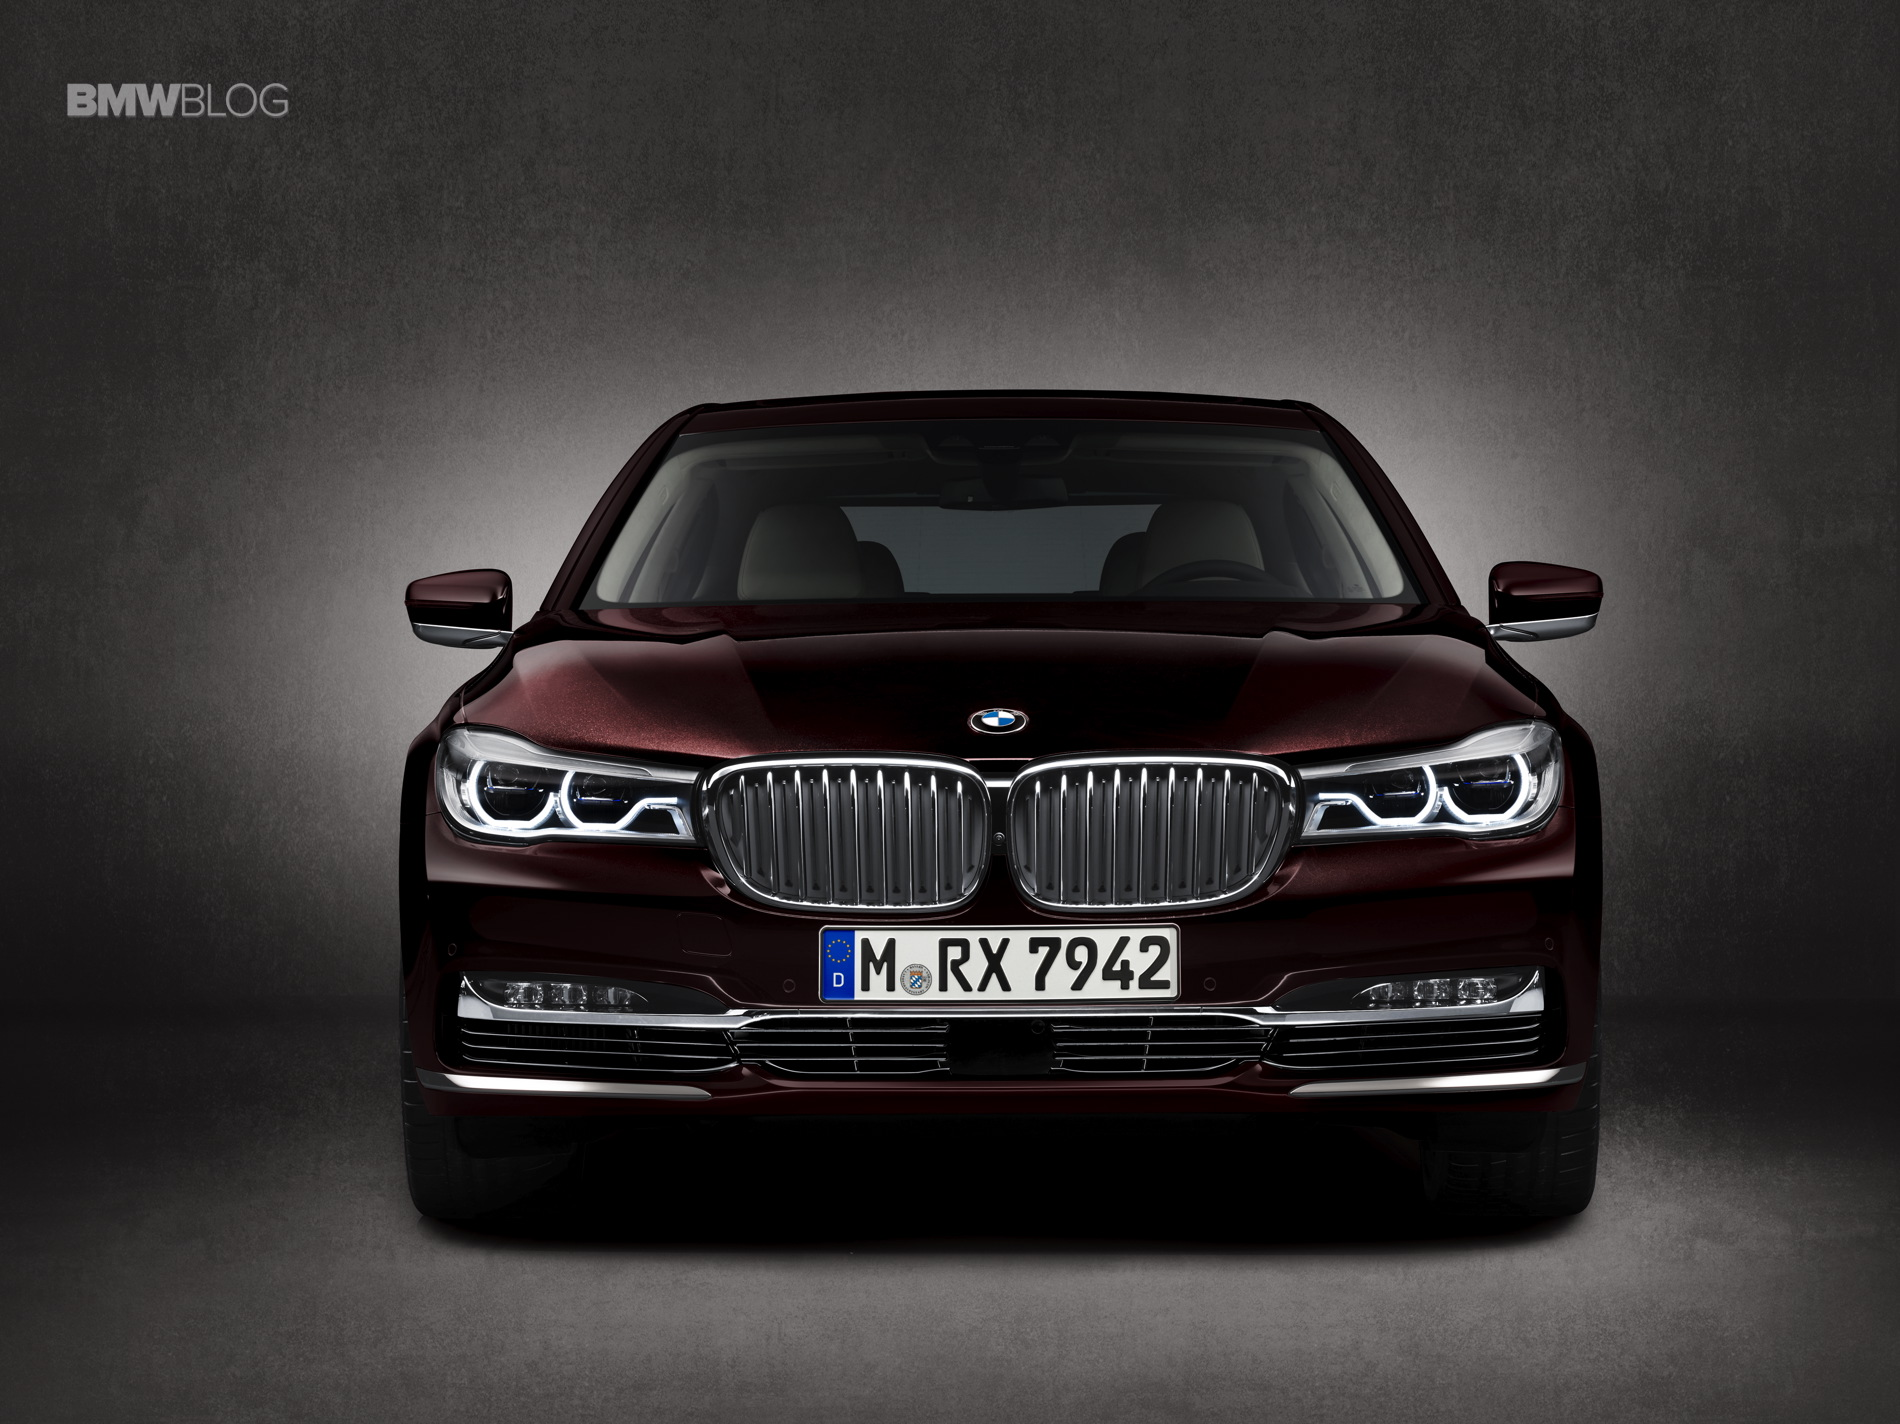 BMW M760Li xDrive images 15